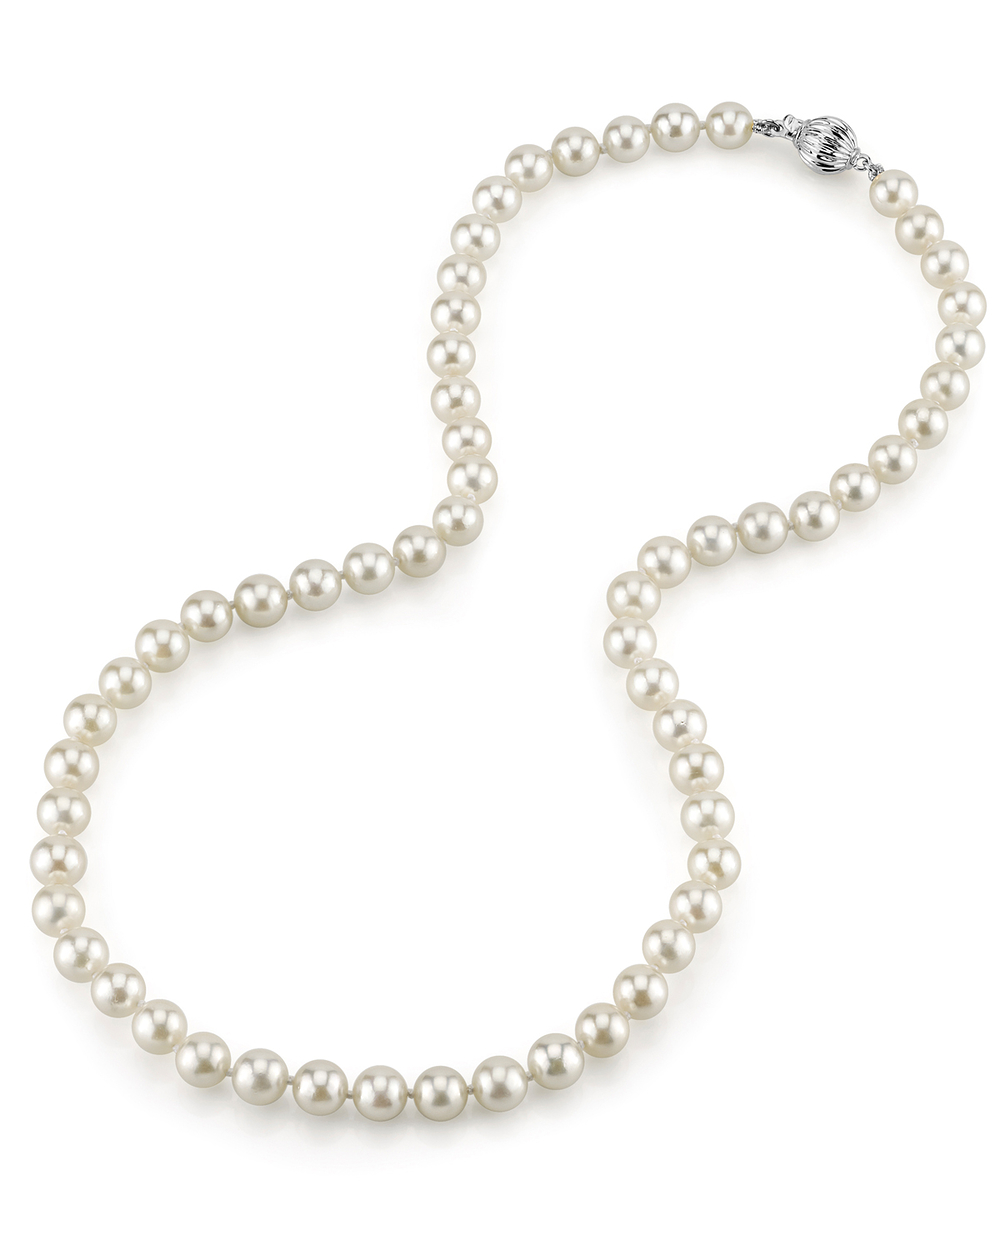 6.5-7.0mm Japanese Akoya White Choker Length Pearl Necklace- AA+ Quality